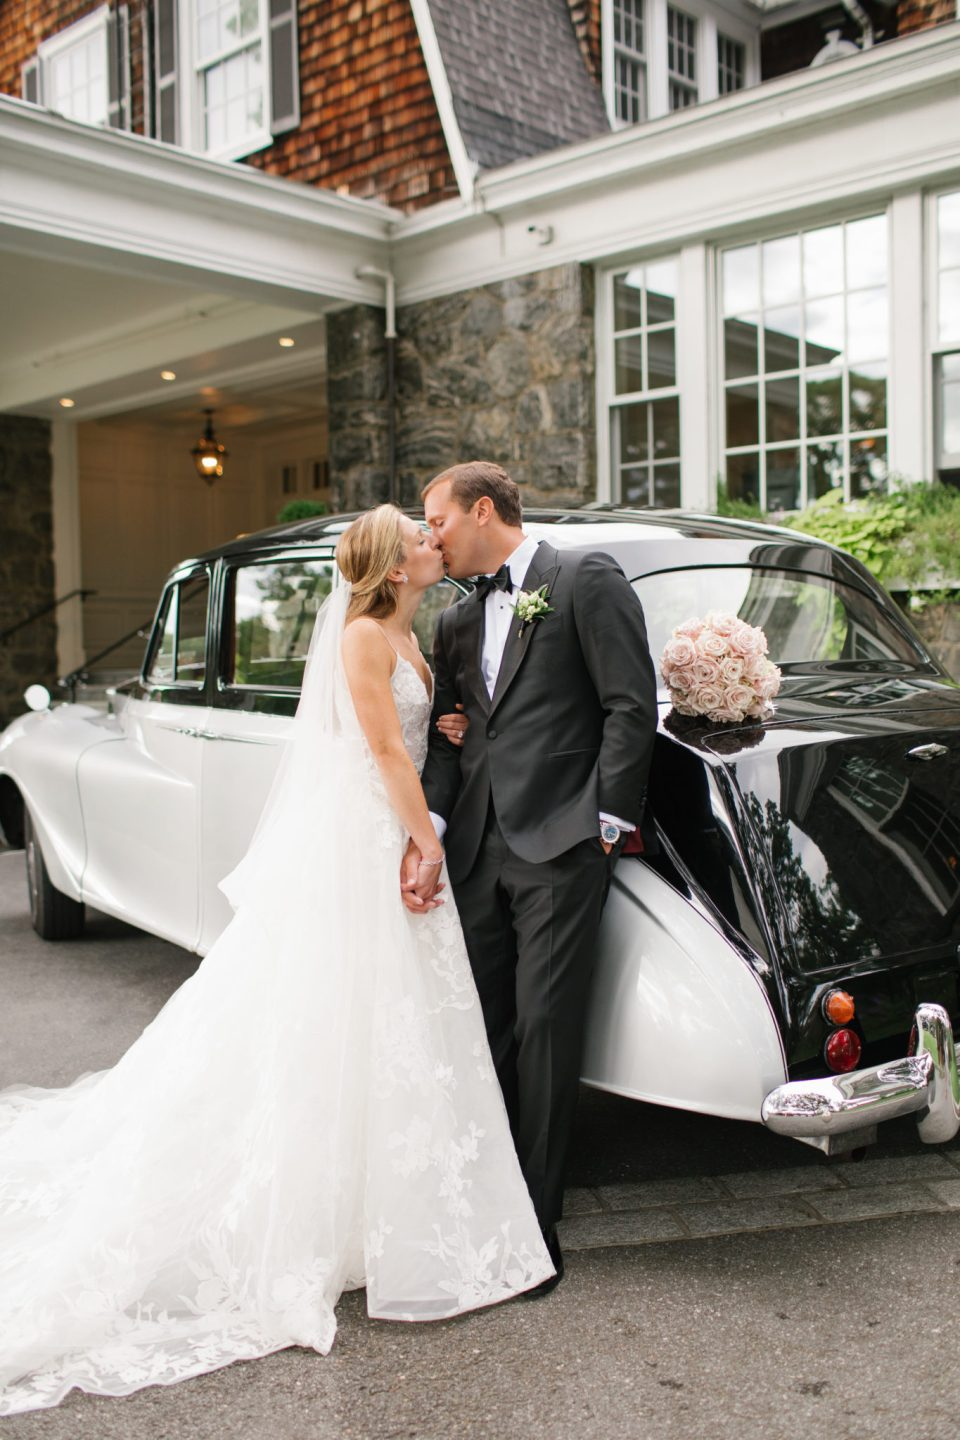 Ashley Mac Photographs captures bride and groom by classic car